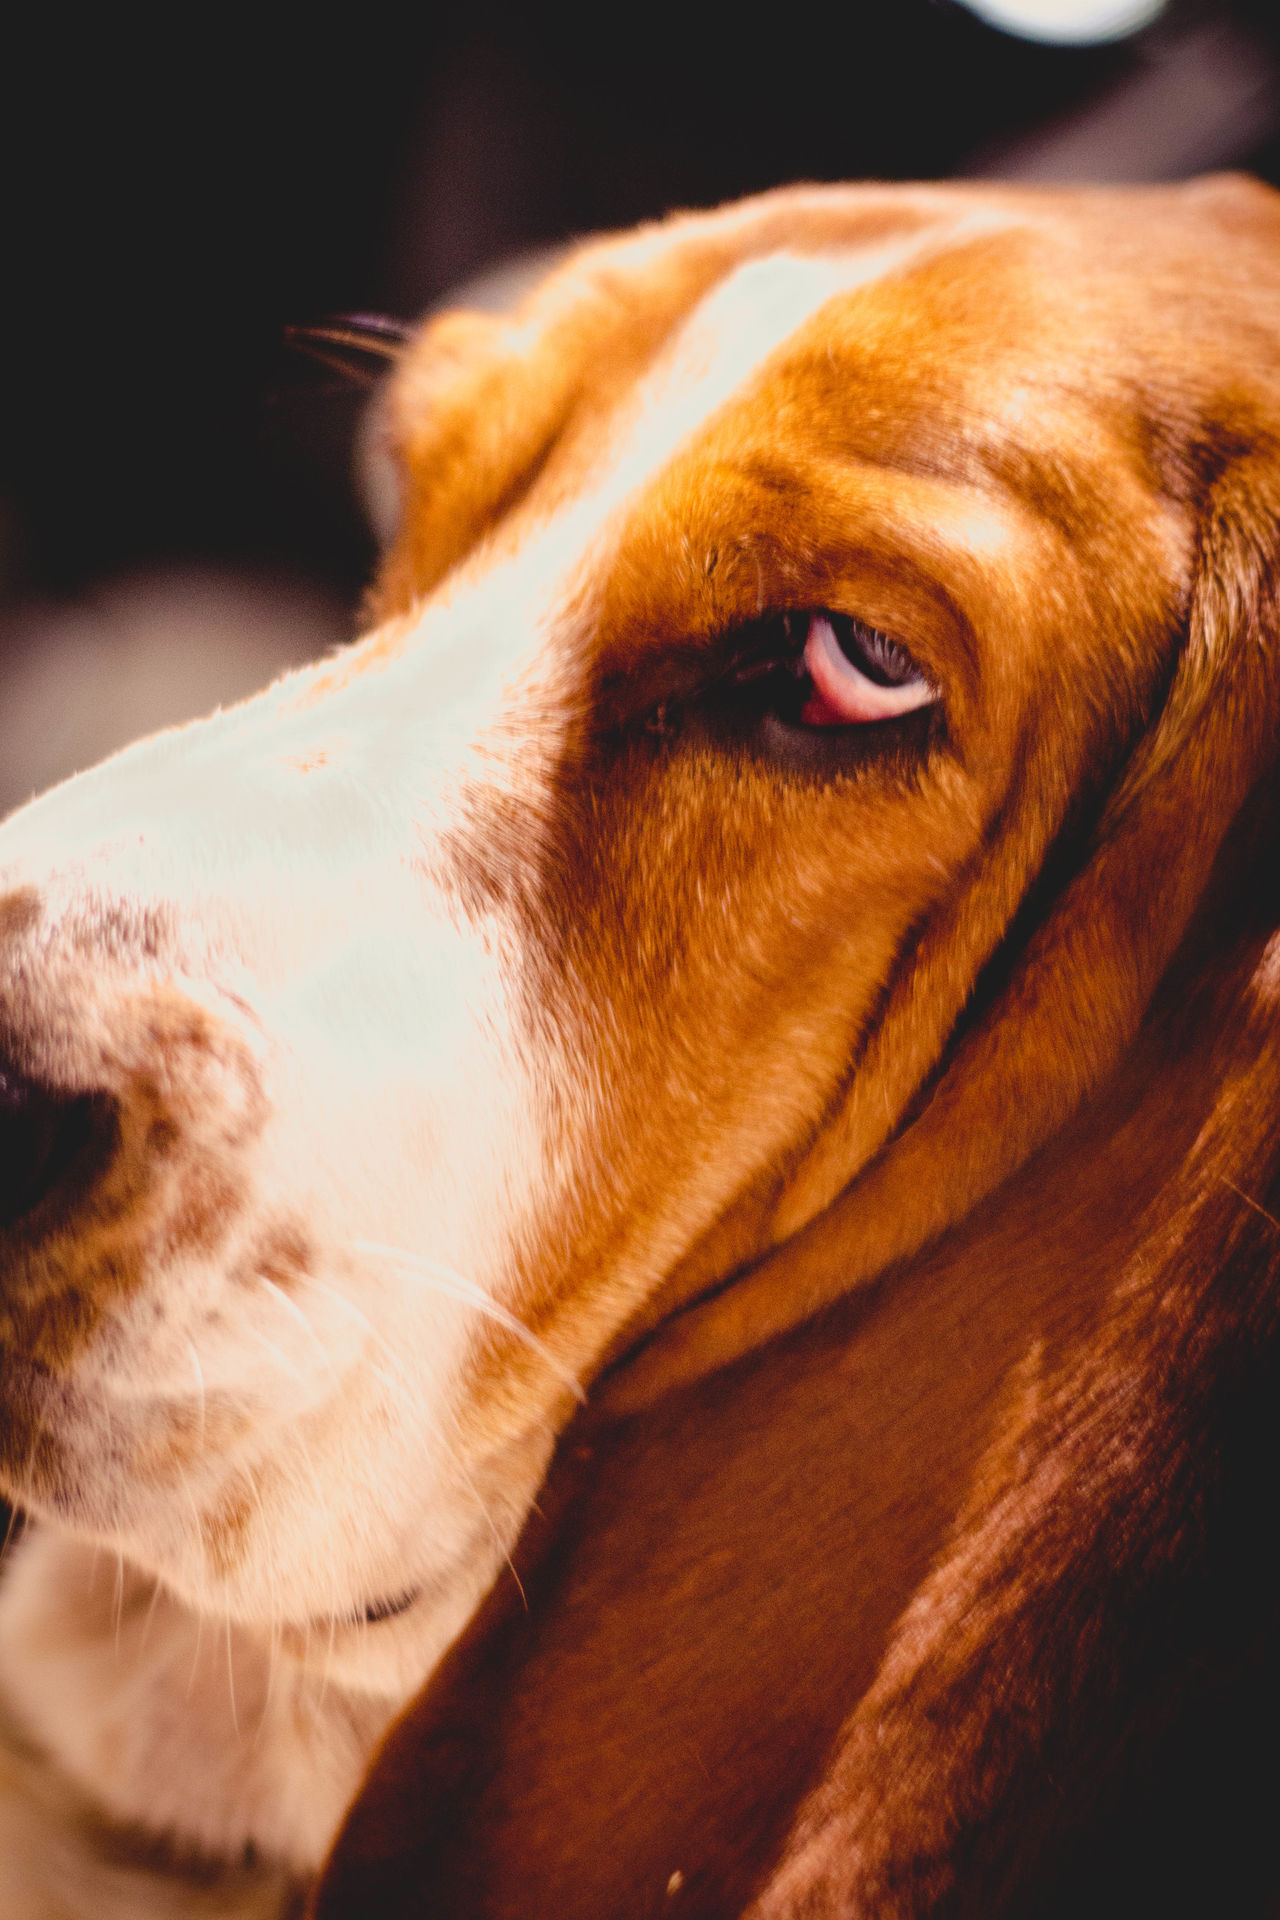 Animal Head  Animal Themes Basset Close-up Cute Cute Dog  Cute Pets Day Dog Domestic Animals Droopy Ears Indoors  Mammal No People One Animal Pets Sad